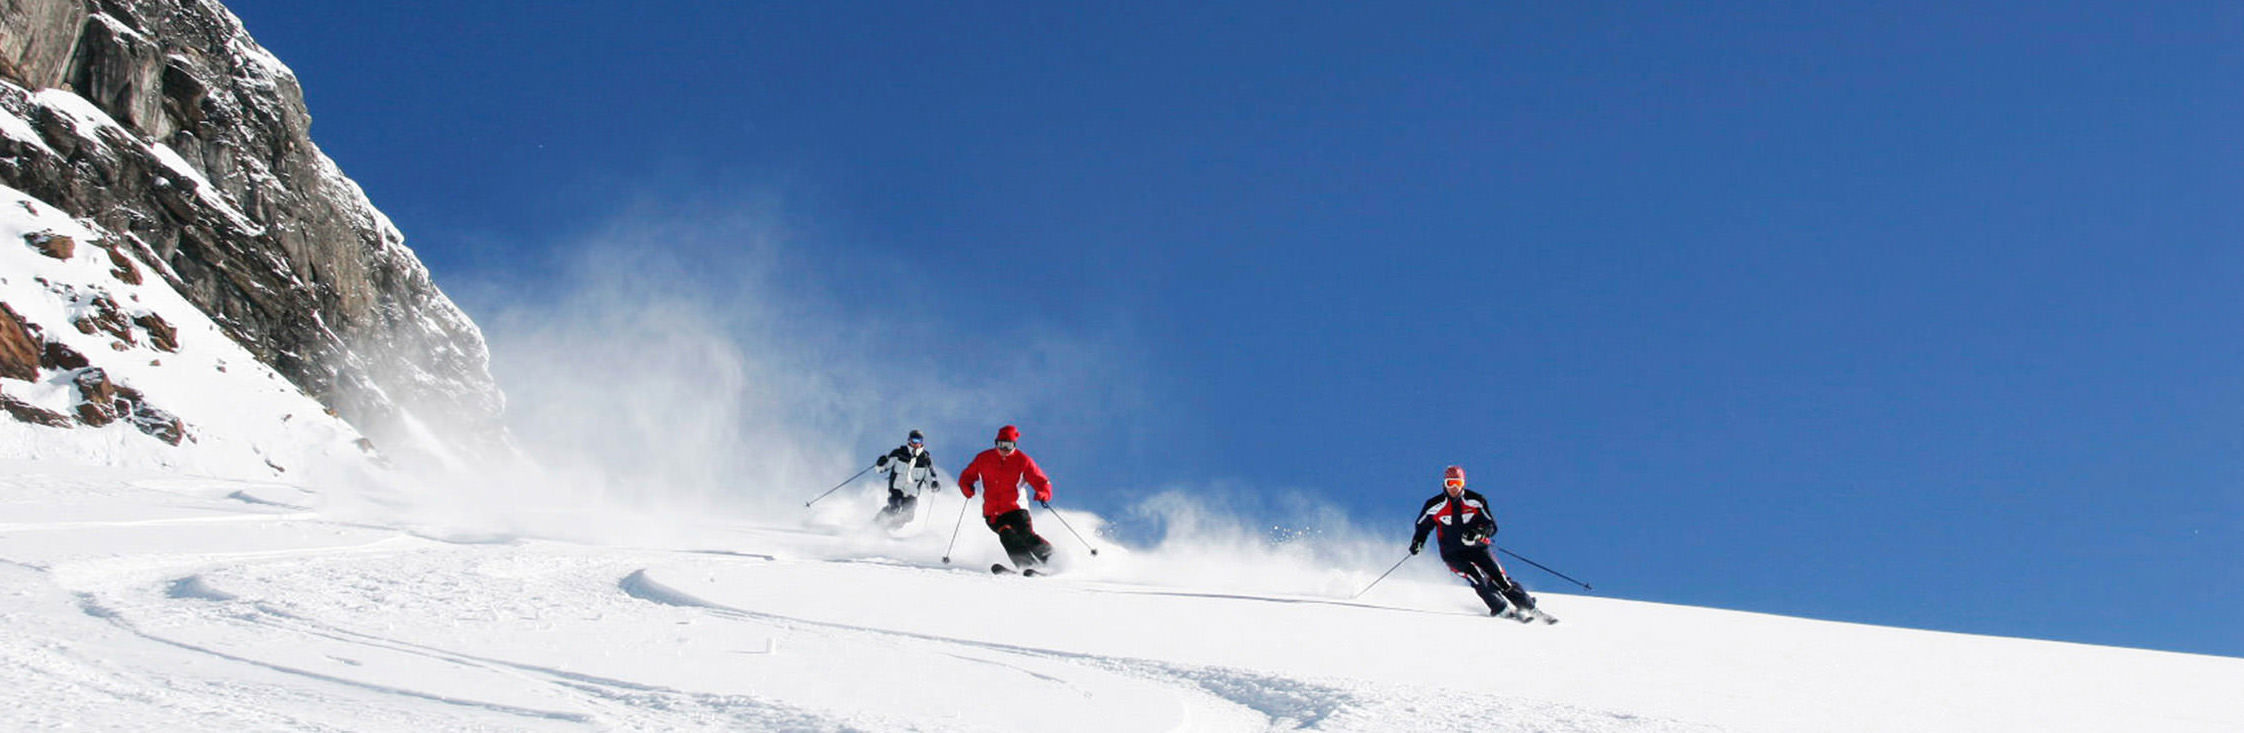 heliskiing_small_tracks-in-snow-skier